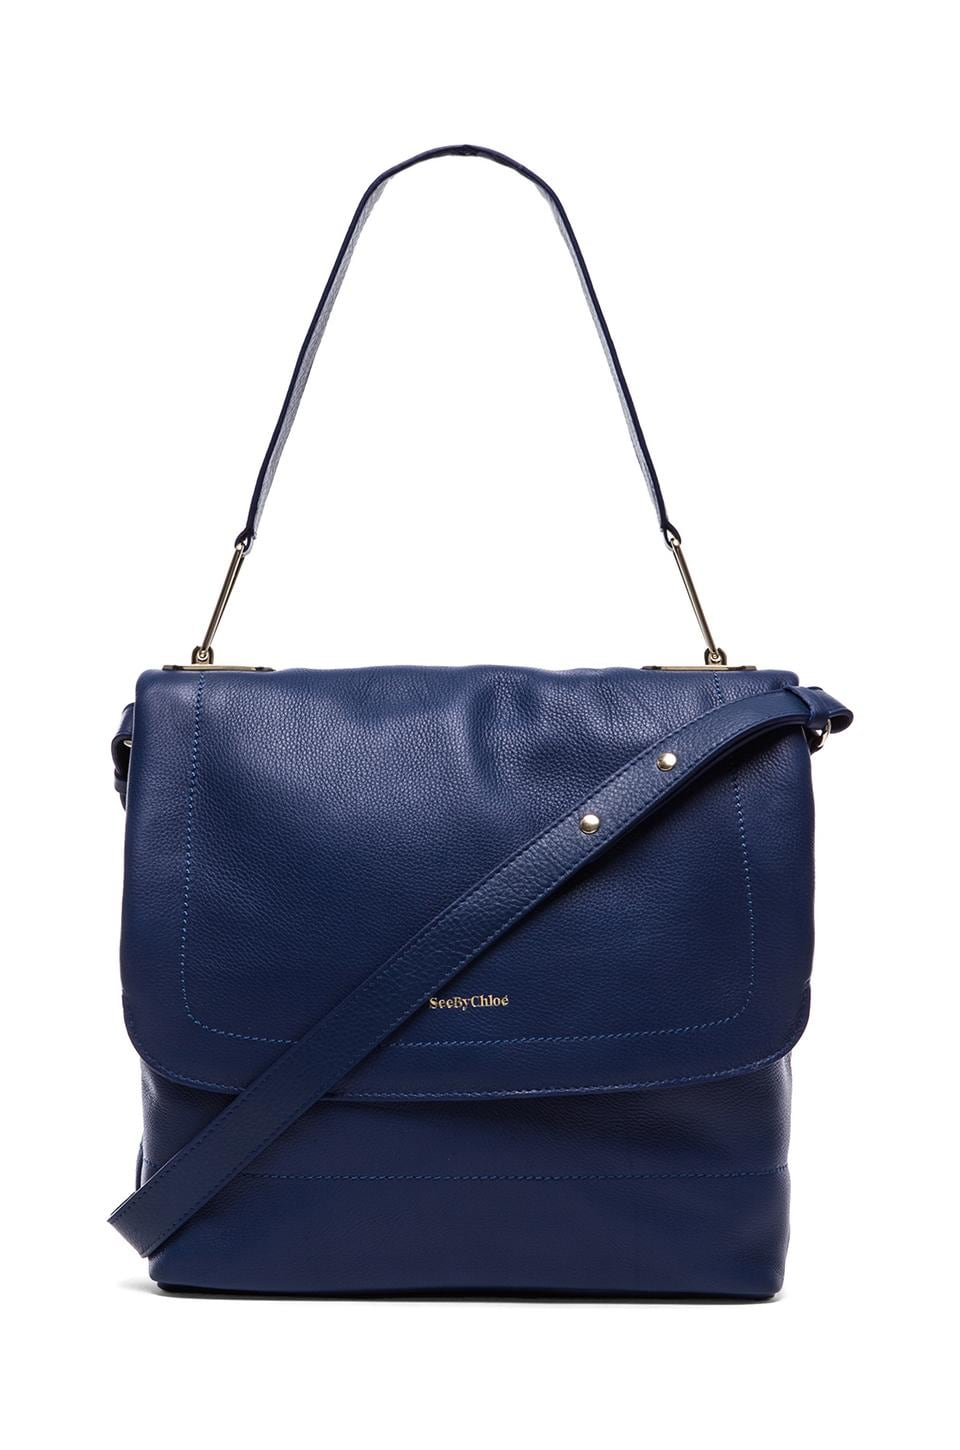 See By Chloe Berty Messenger Bag in Mazarine Blue